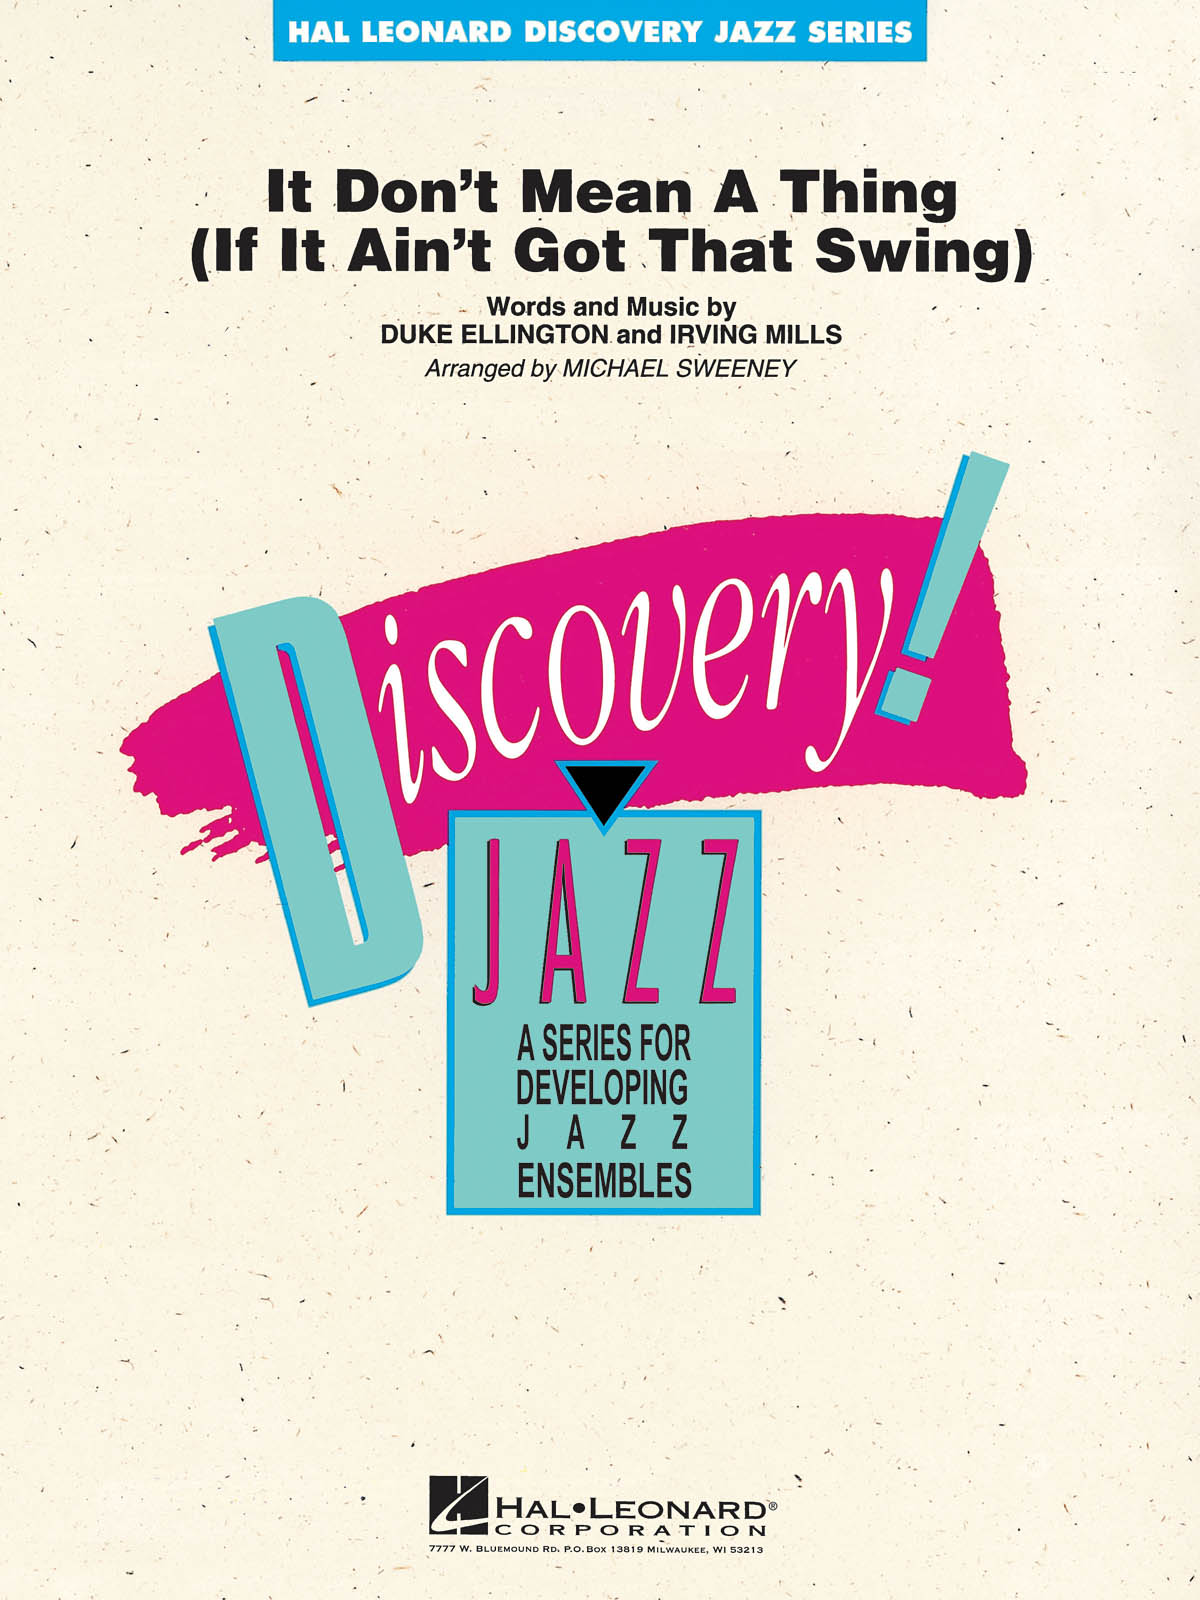 It Don't Mean a Thing (If It Ain't Got That Swing): Discovery Jazz